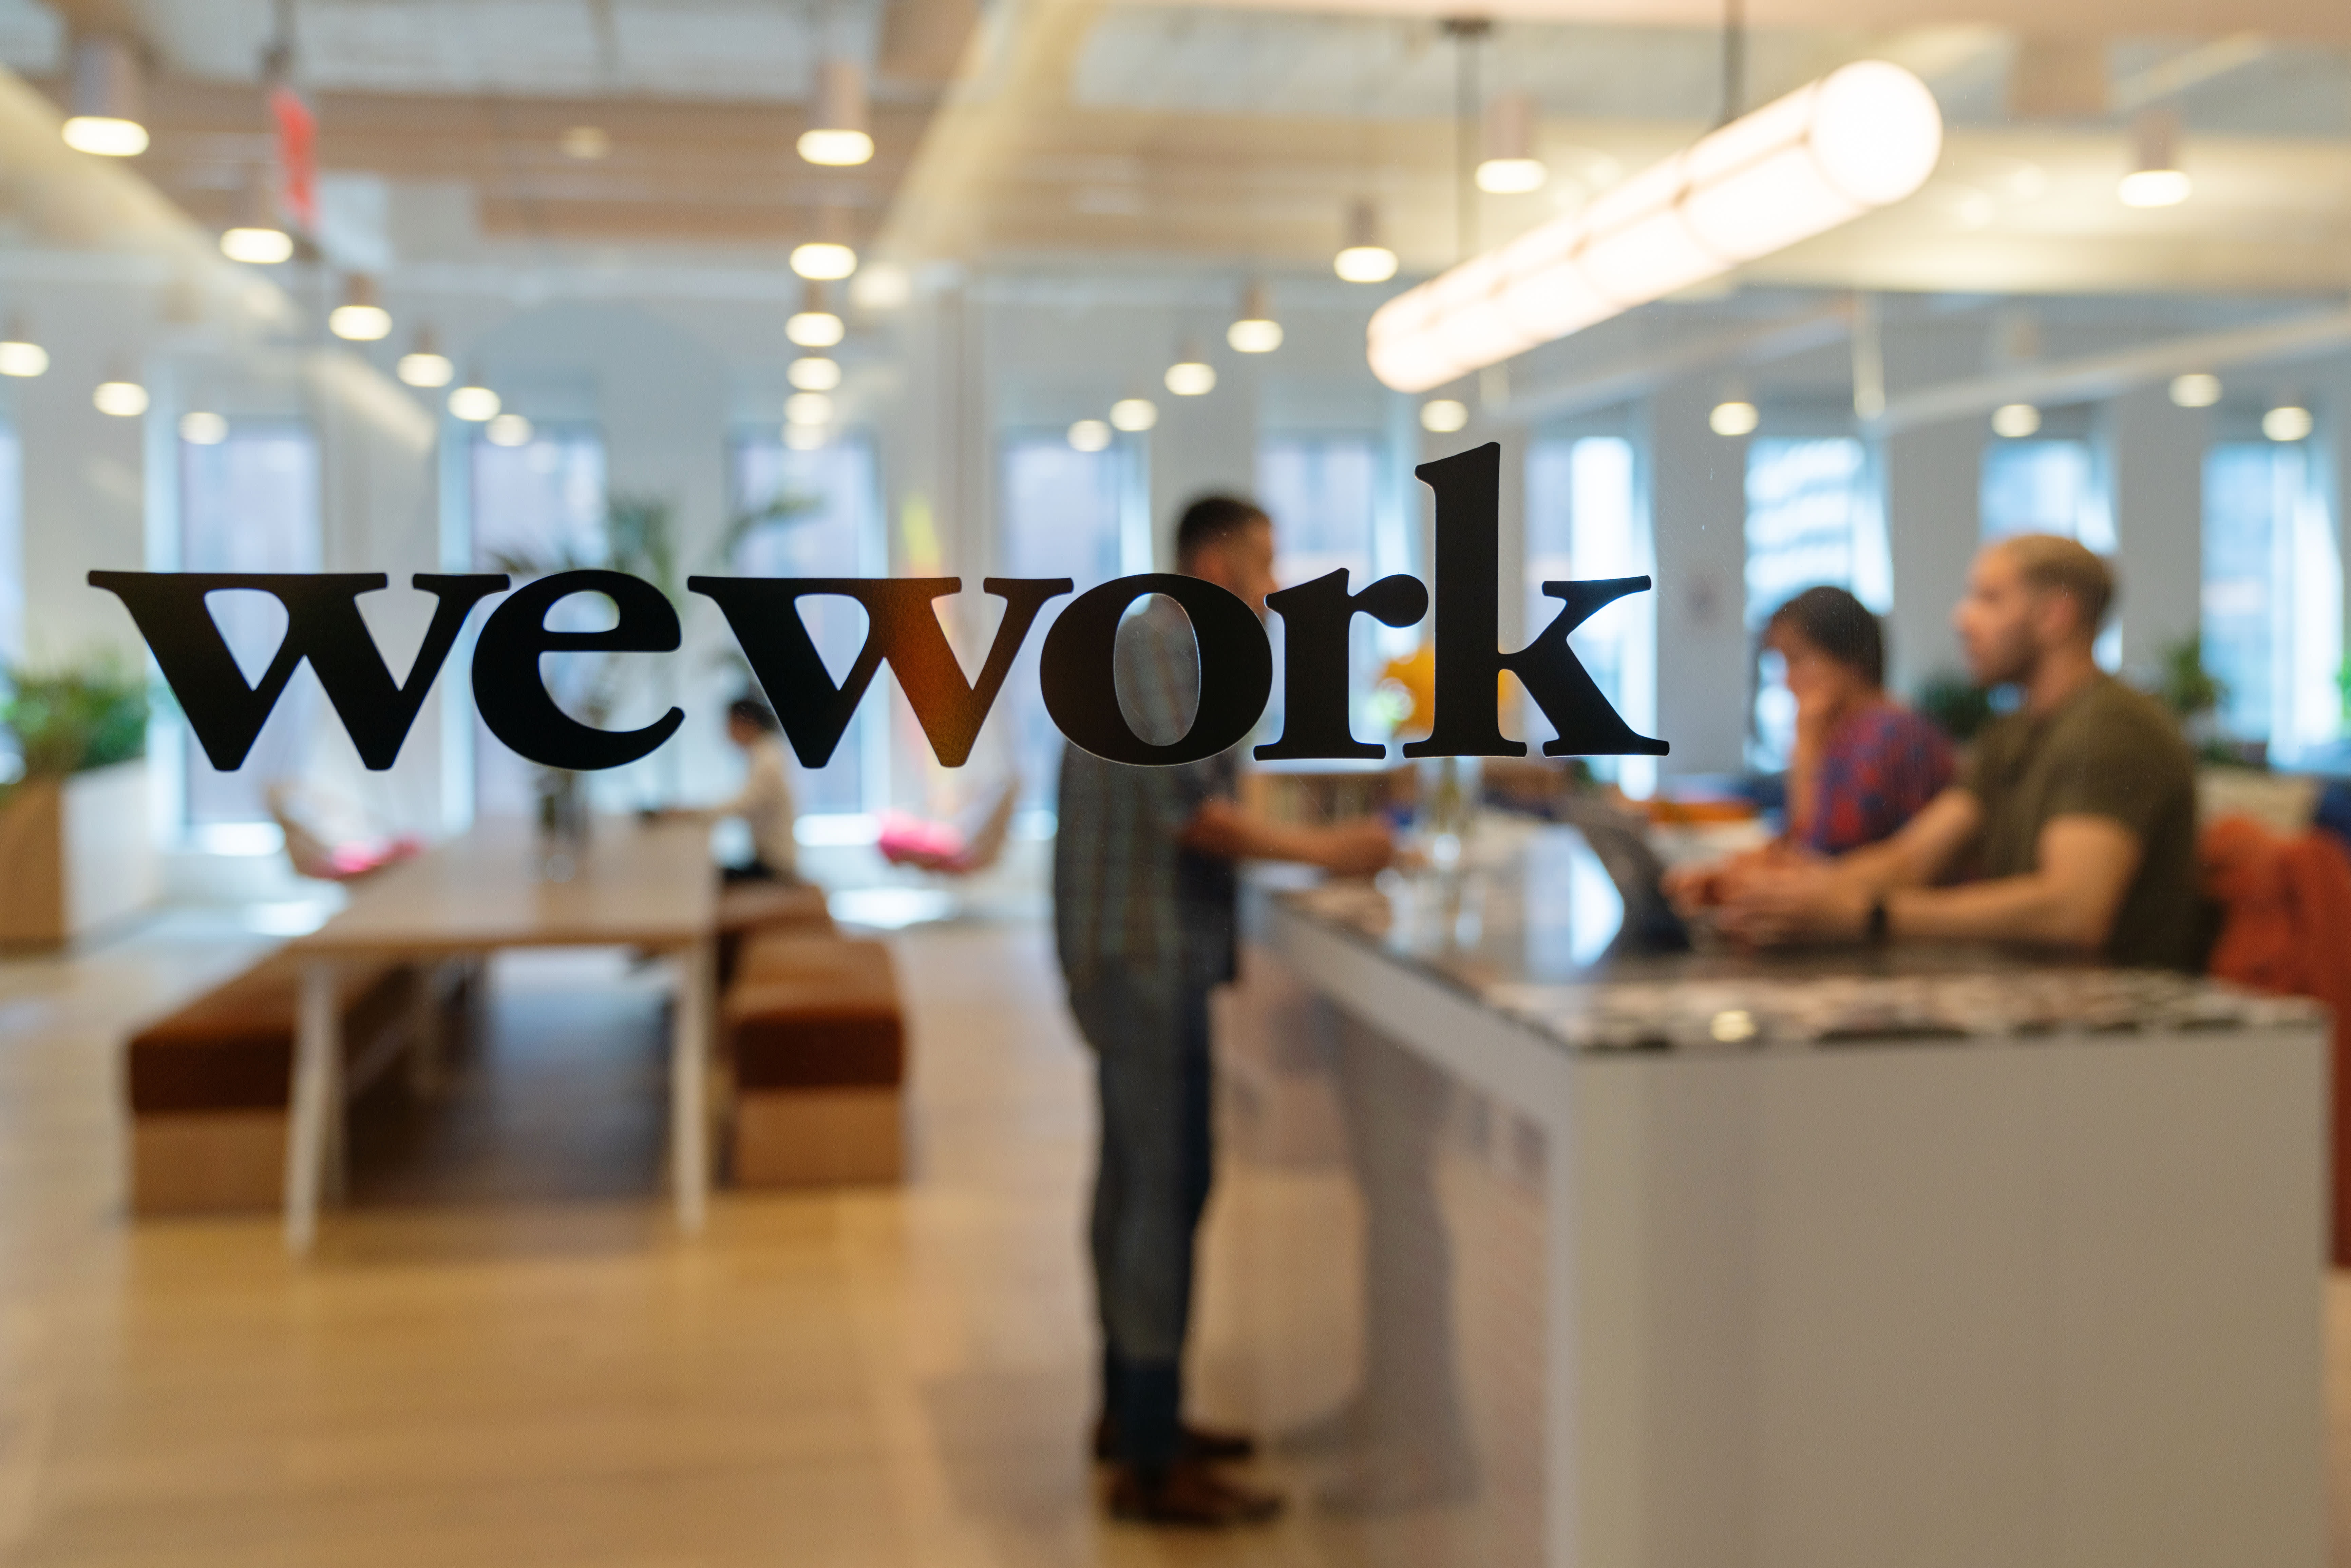 WeWork sells Teem and its stake in The Wing as it continues to divest non-core businesses